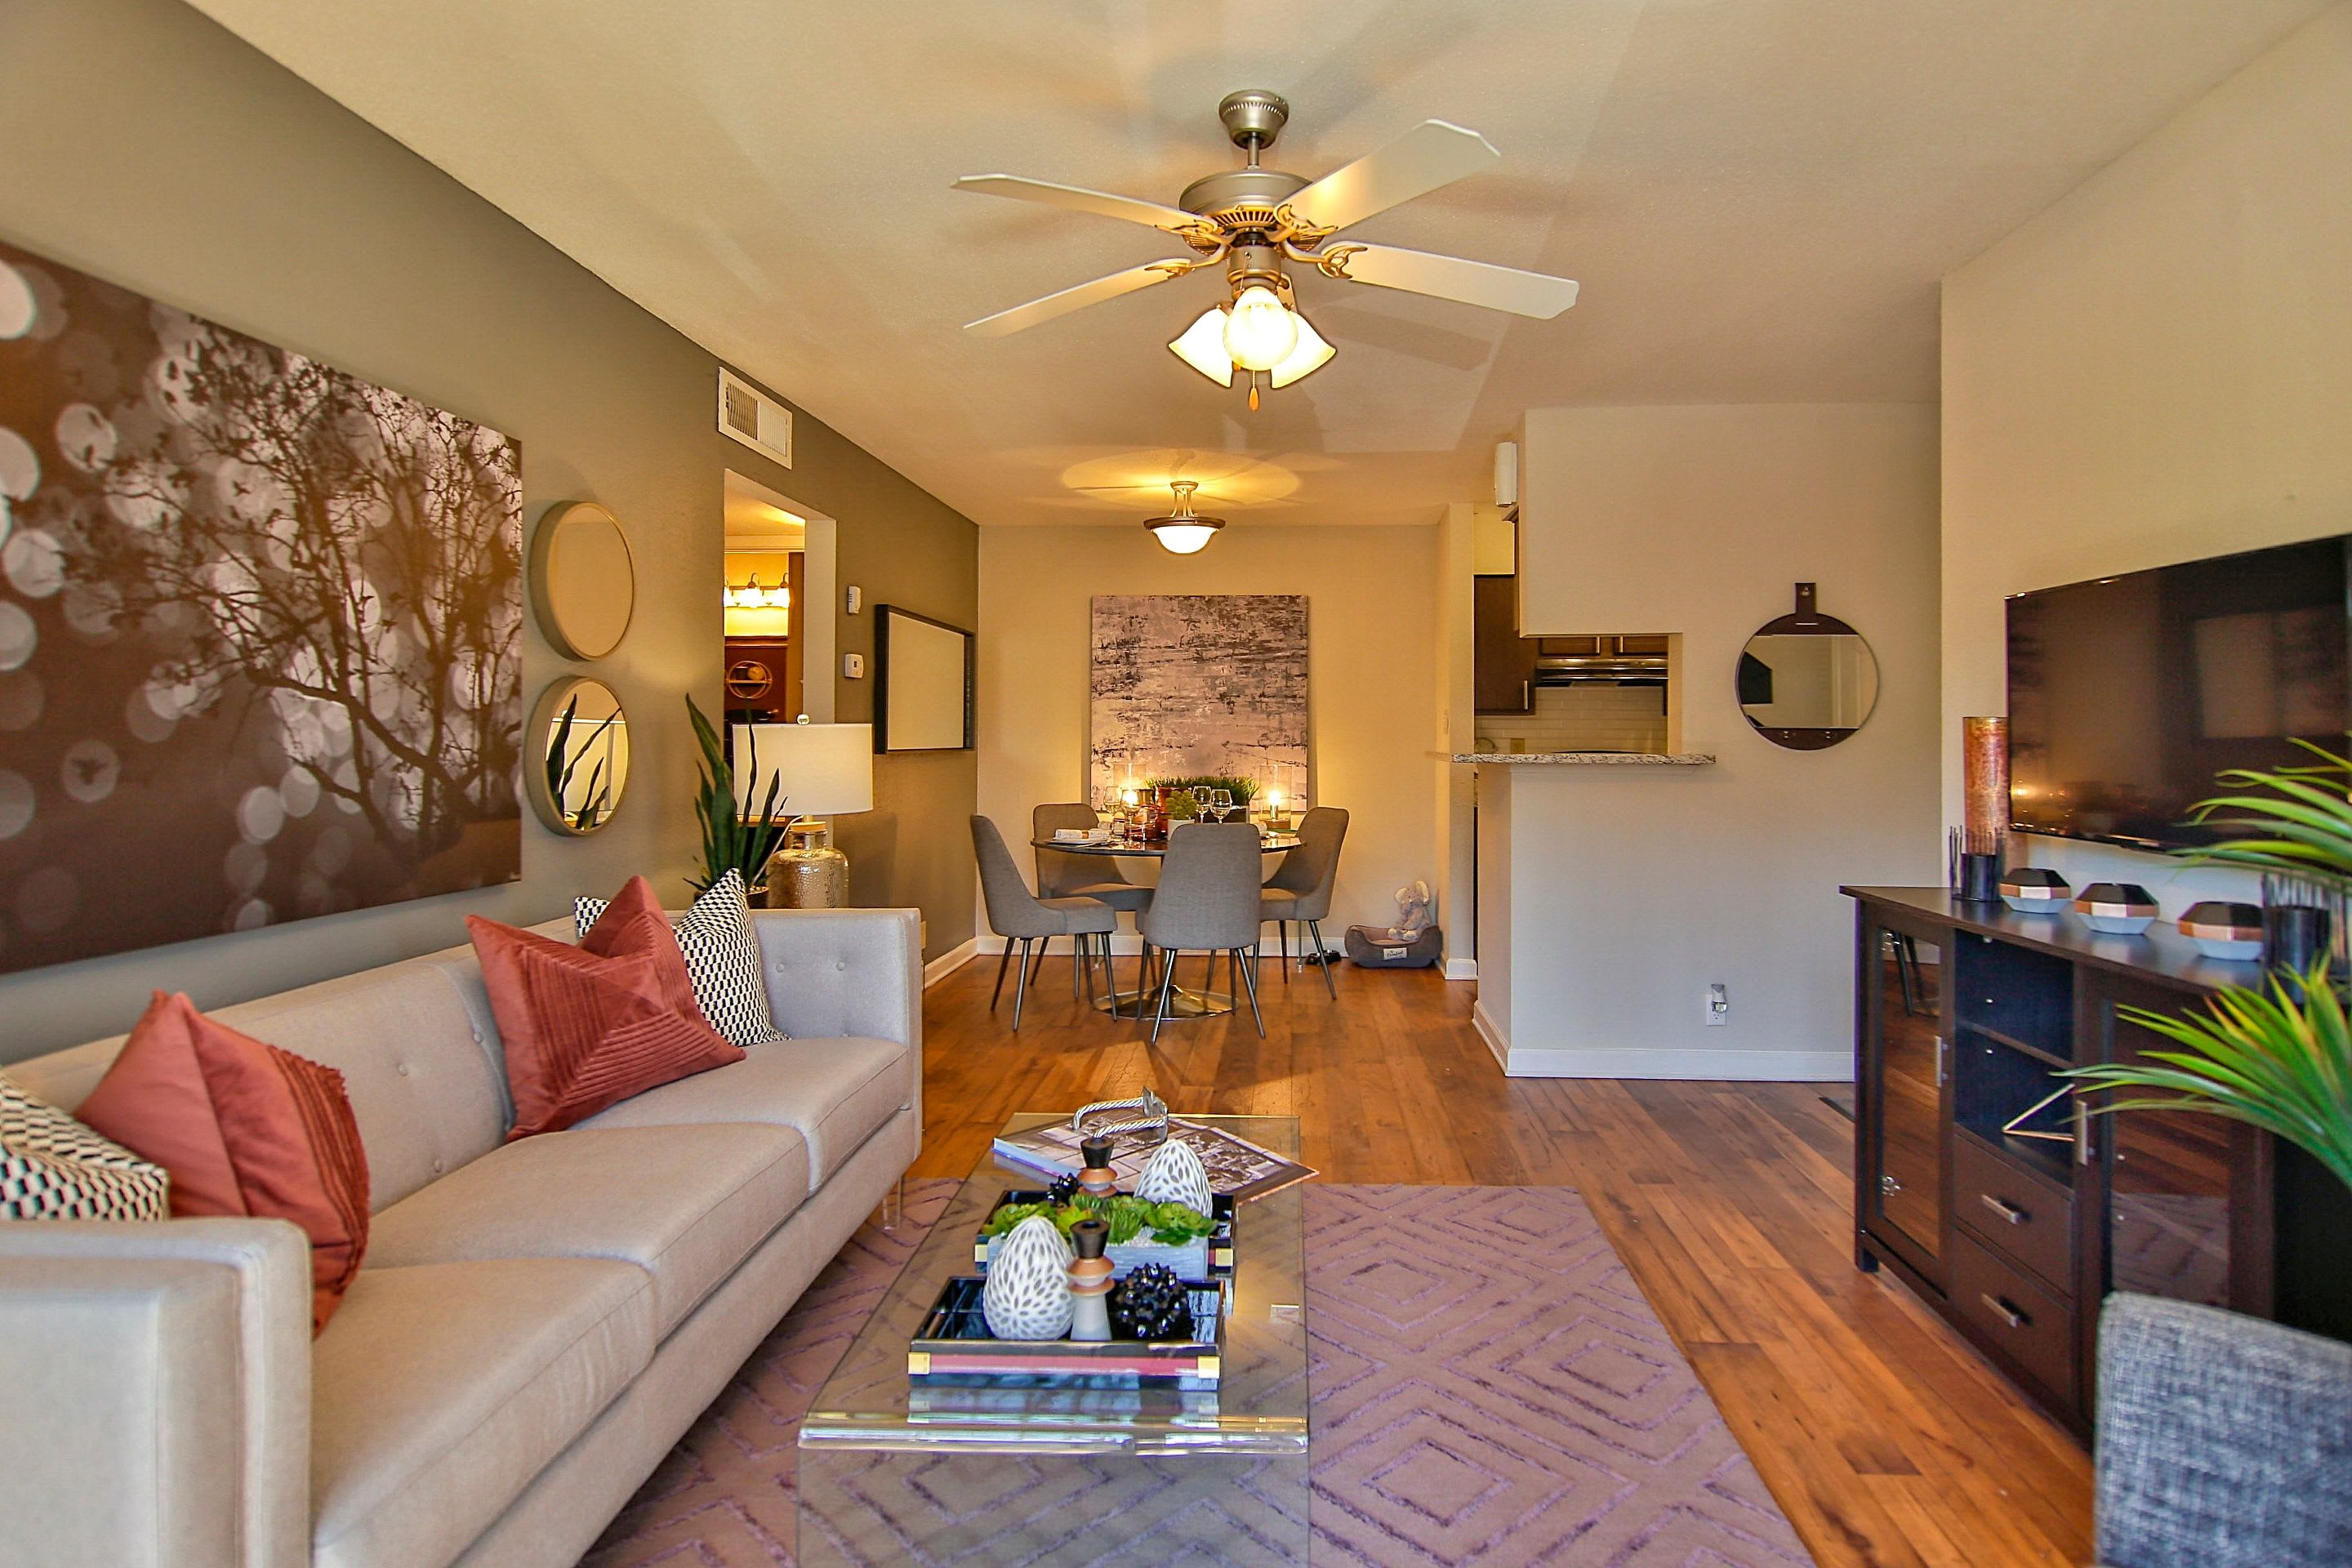 Model home's living area with a ceiling fan and an accent wall at Allegro on Bell in Antioch, Tennessee